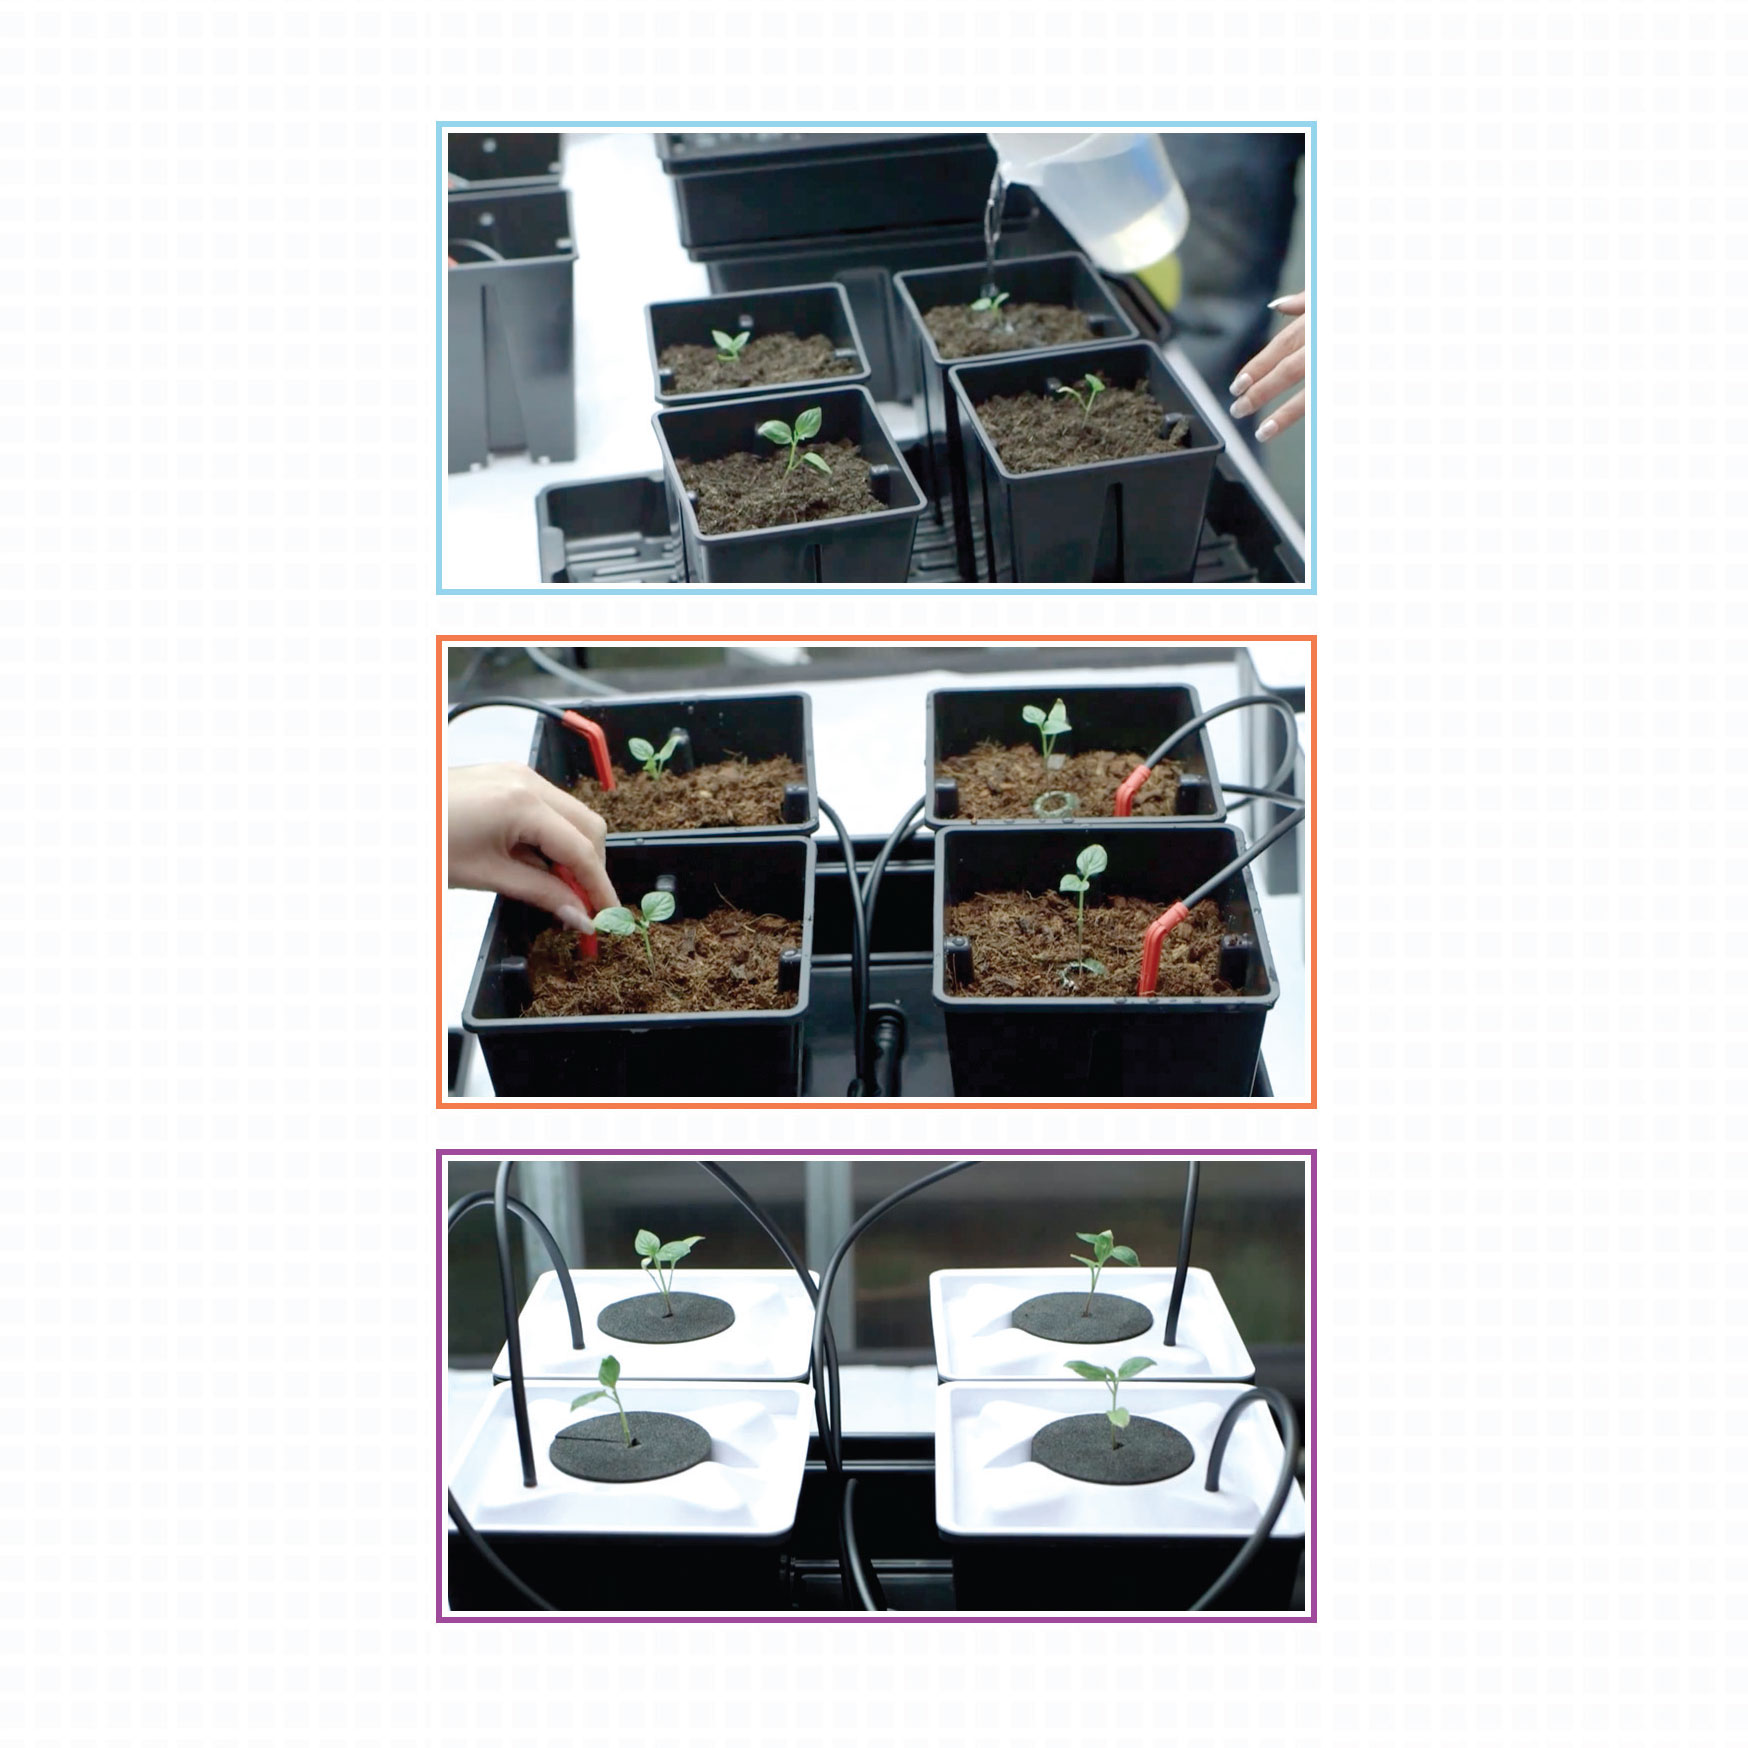 Soil, Geoponics, Hydro, Hydroponics, Aeroponics, Aero, growth media, growing medium